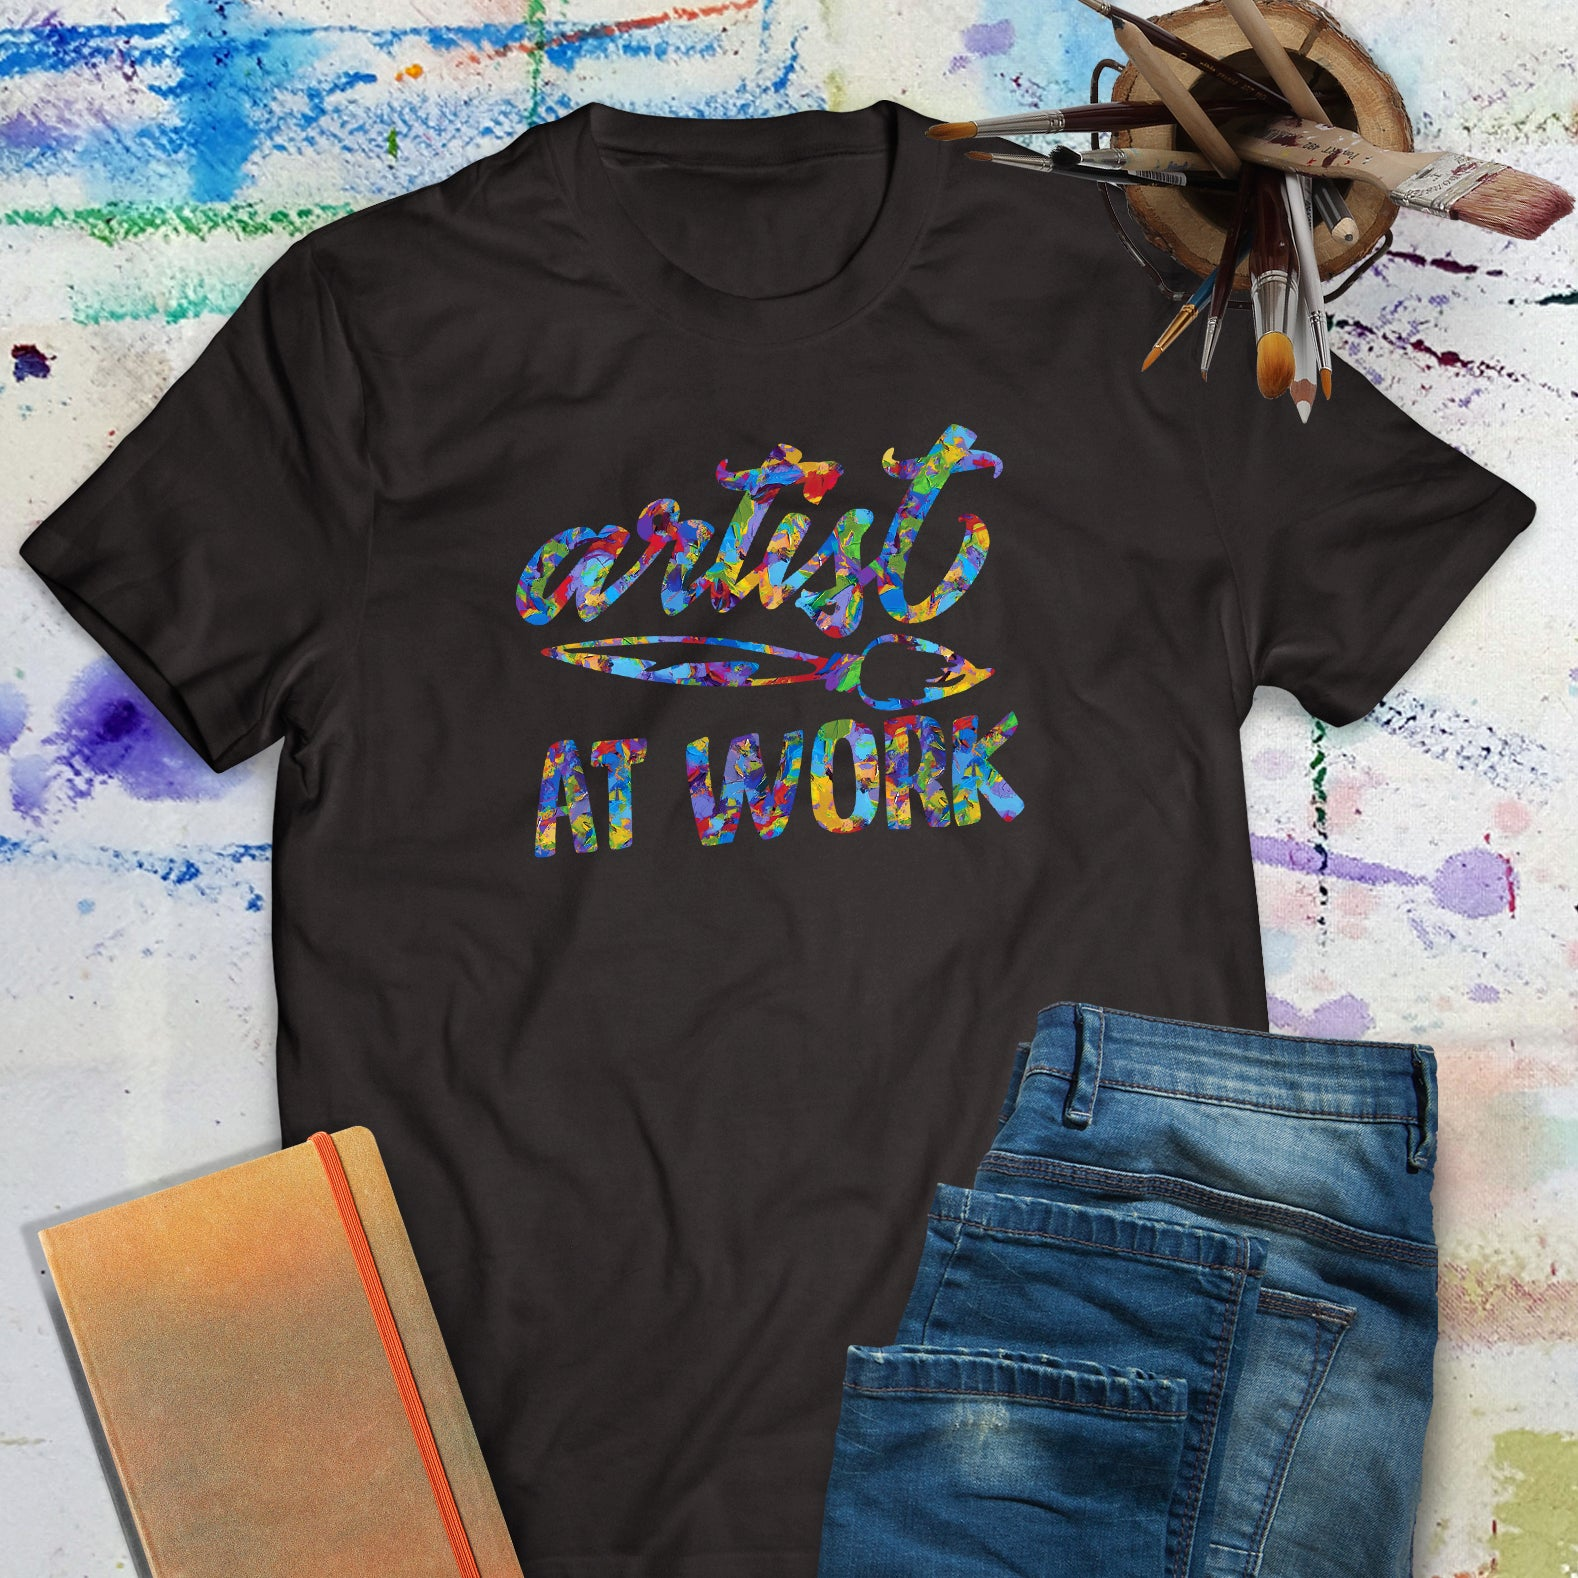 Artist at Work - unisex artist tee shirt | Art Print Express Gear